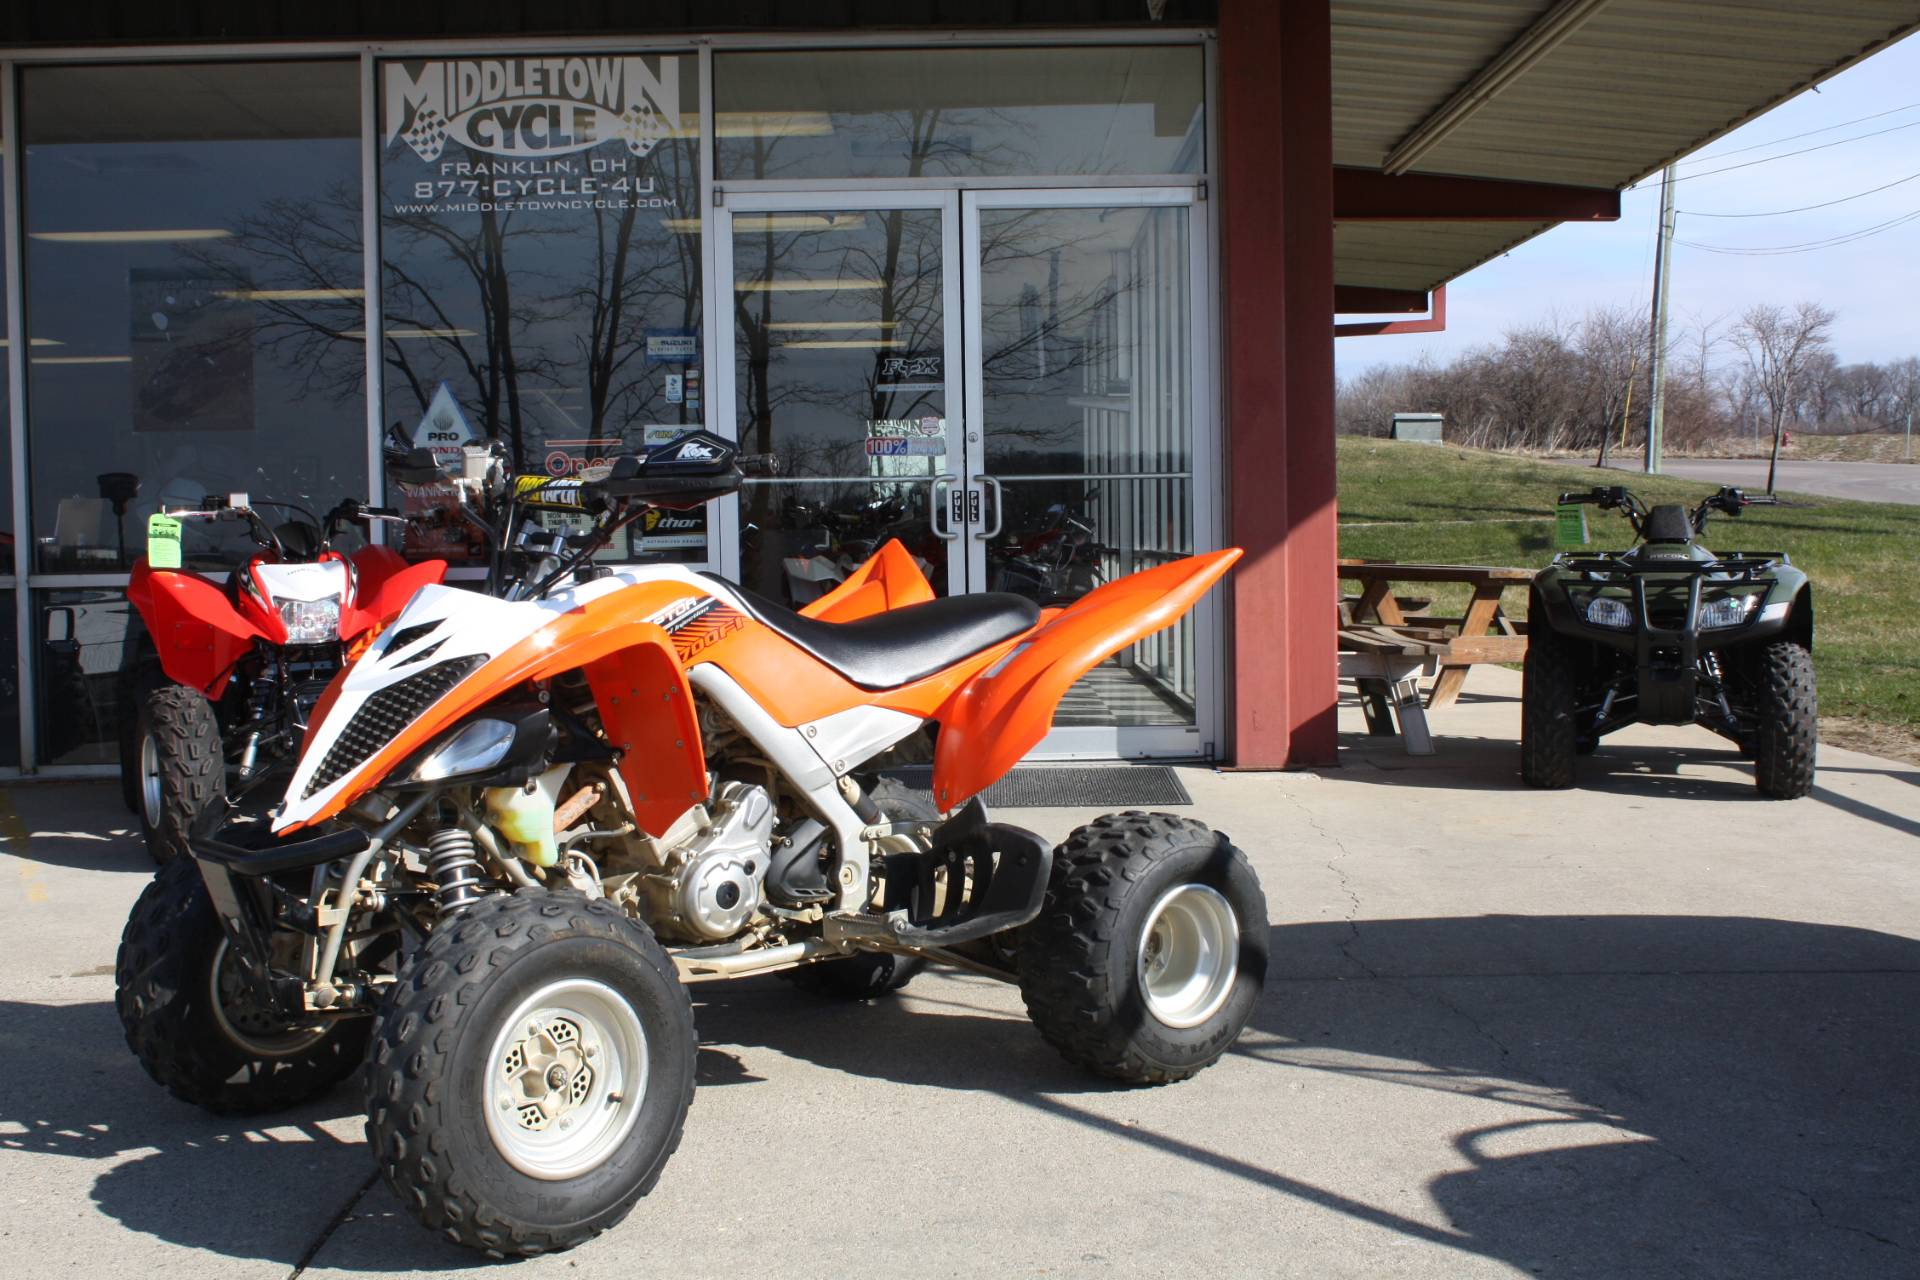 2014 Yamaha RAPTOR 700 in Franklin, Ohio